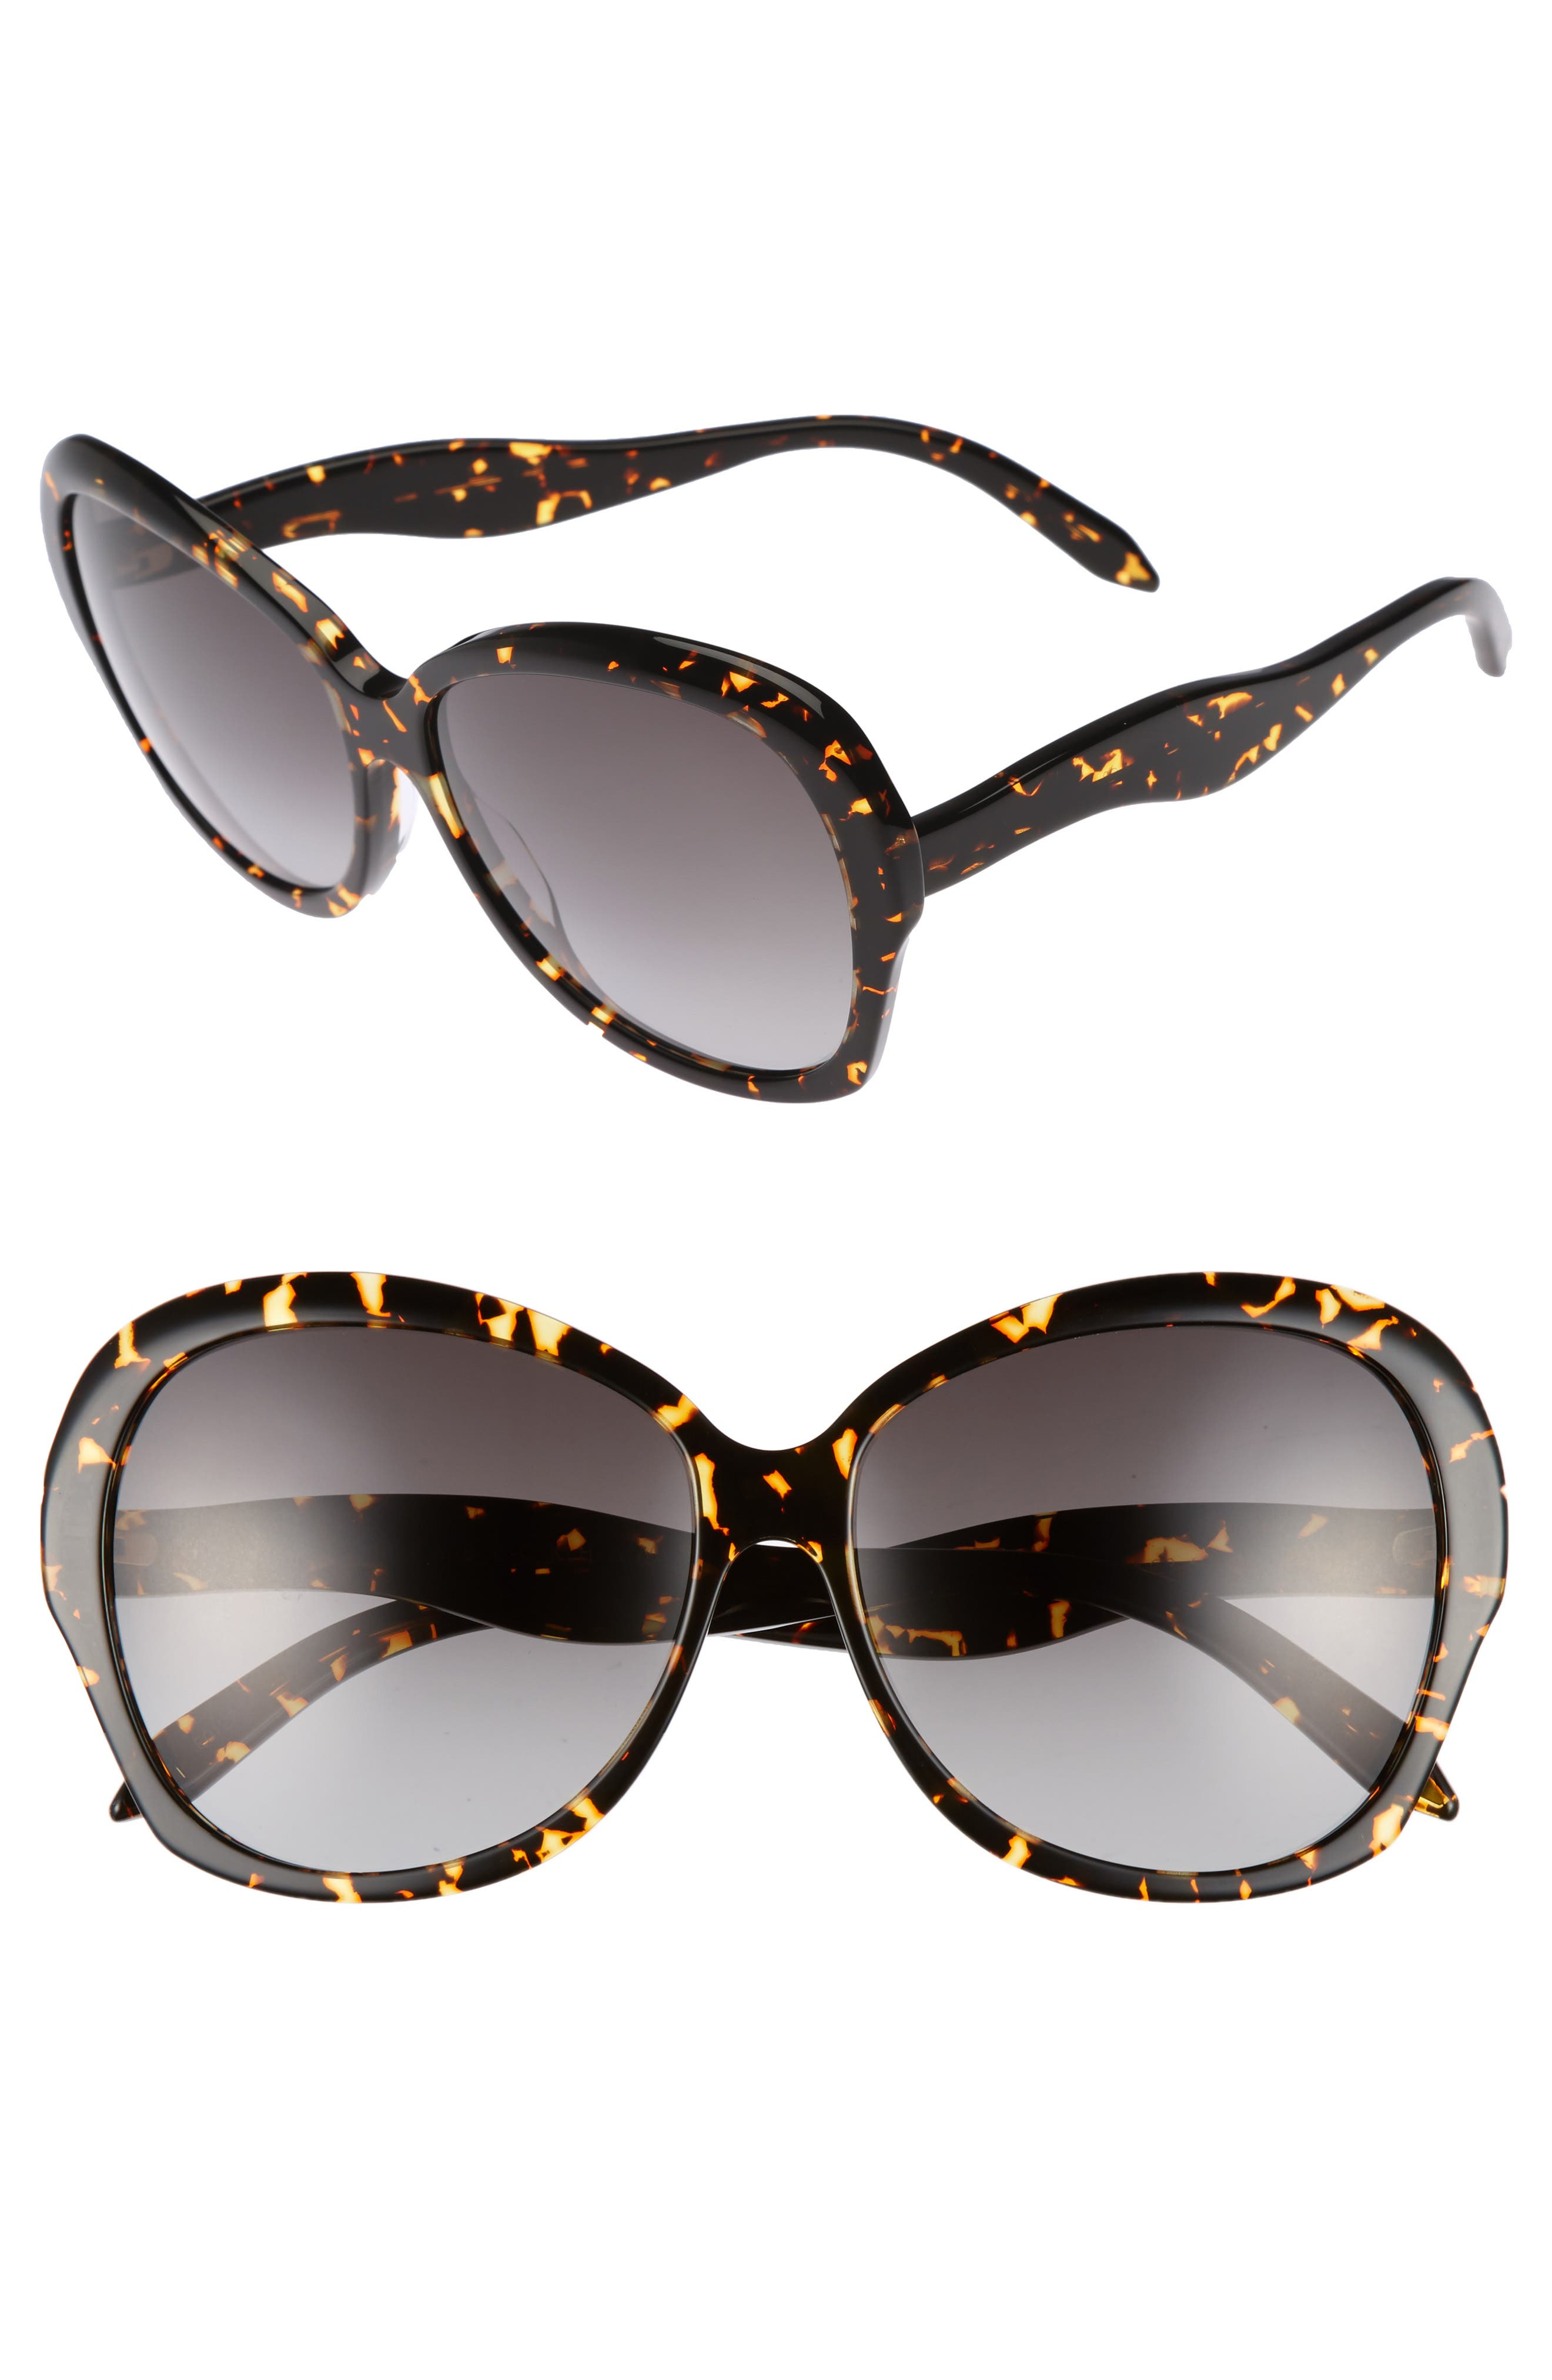 Image of Victoria Beckham 60mm Happy Butterfly Oversize Sunglasses